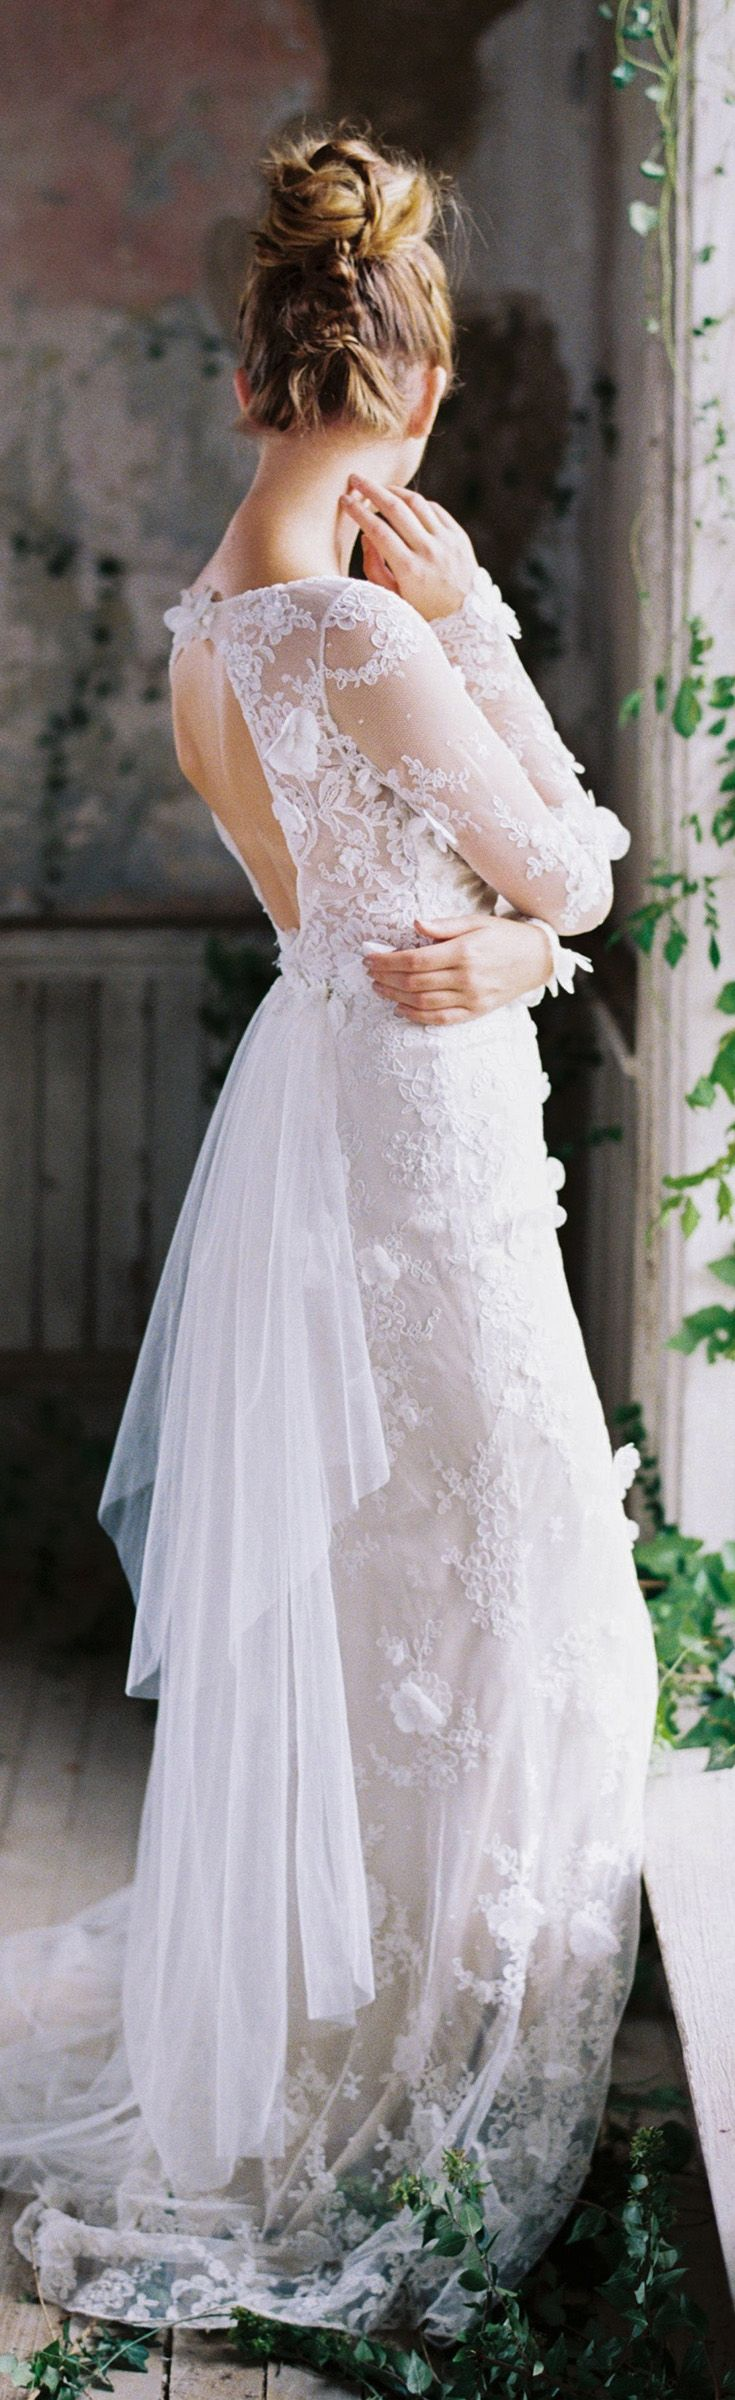 layers of tulle and scattered flowers...Prairie Rose wedding dress from Romantique by Claire Pettibone http://romantique.clairepettibone.com/collections/view-all-gowns/products/prairie_rose-2